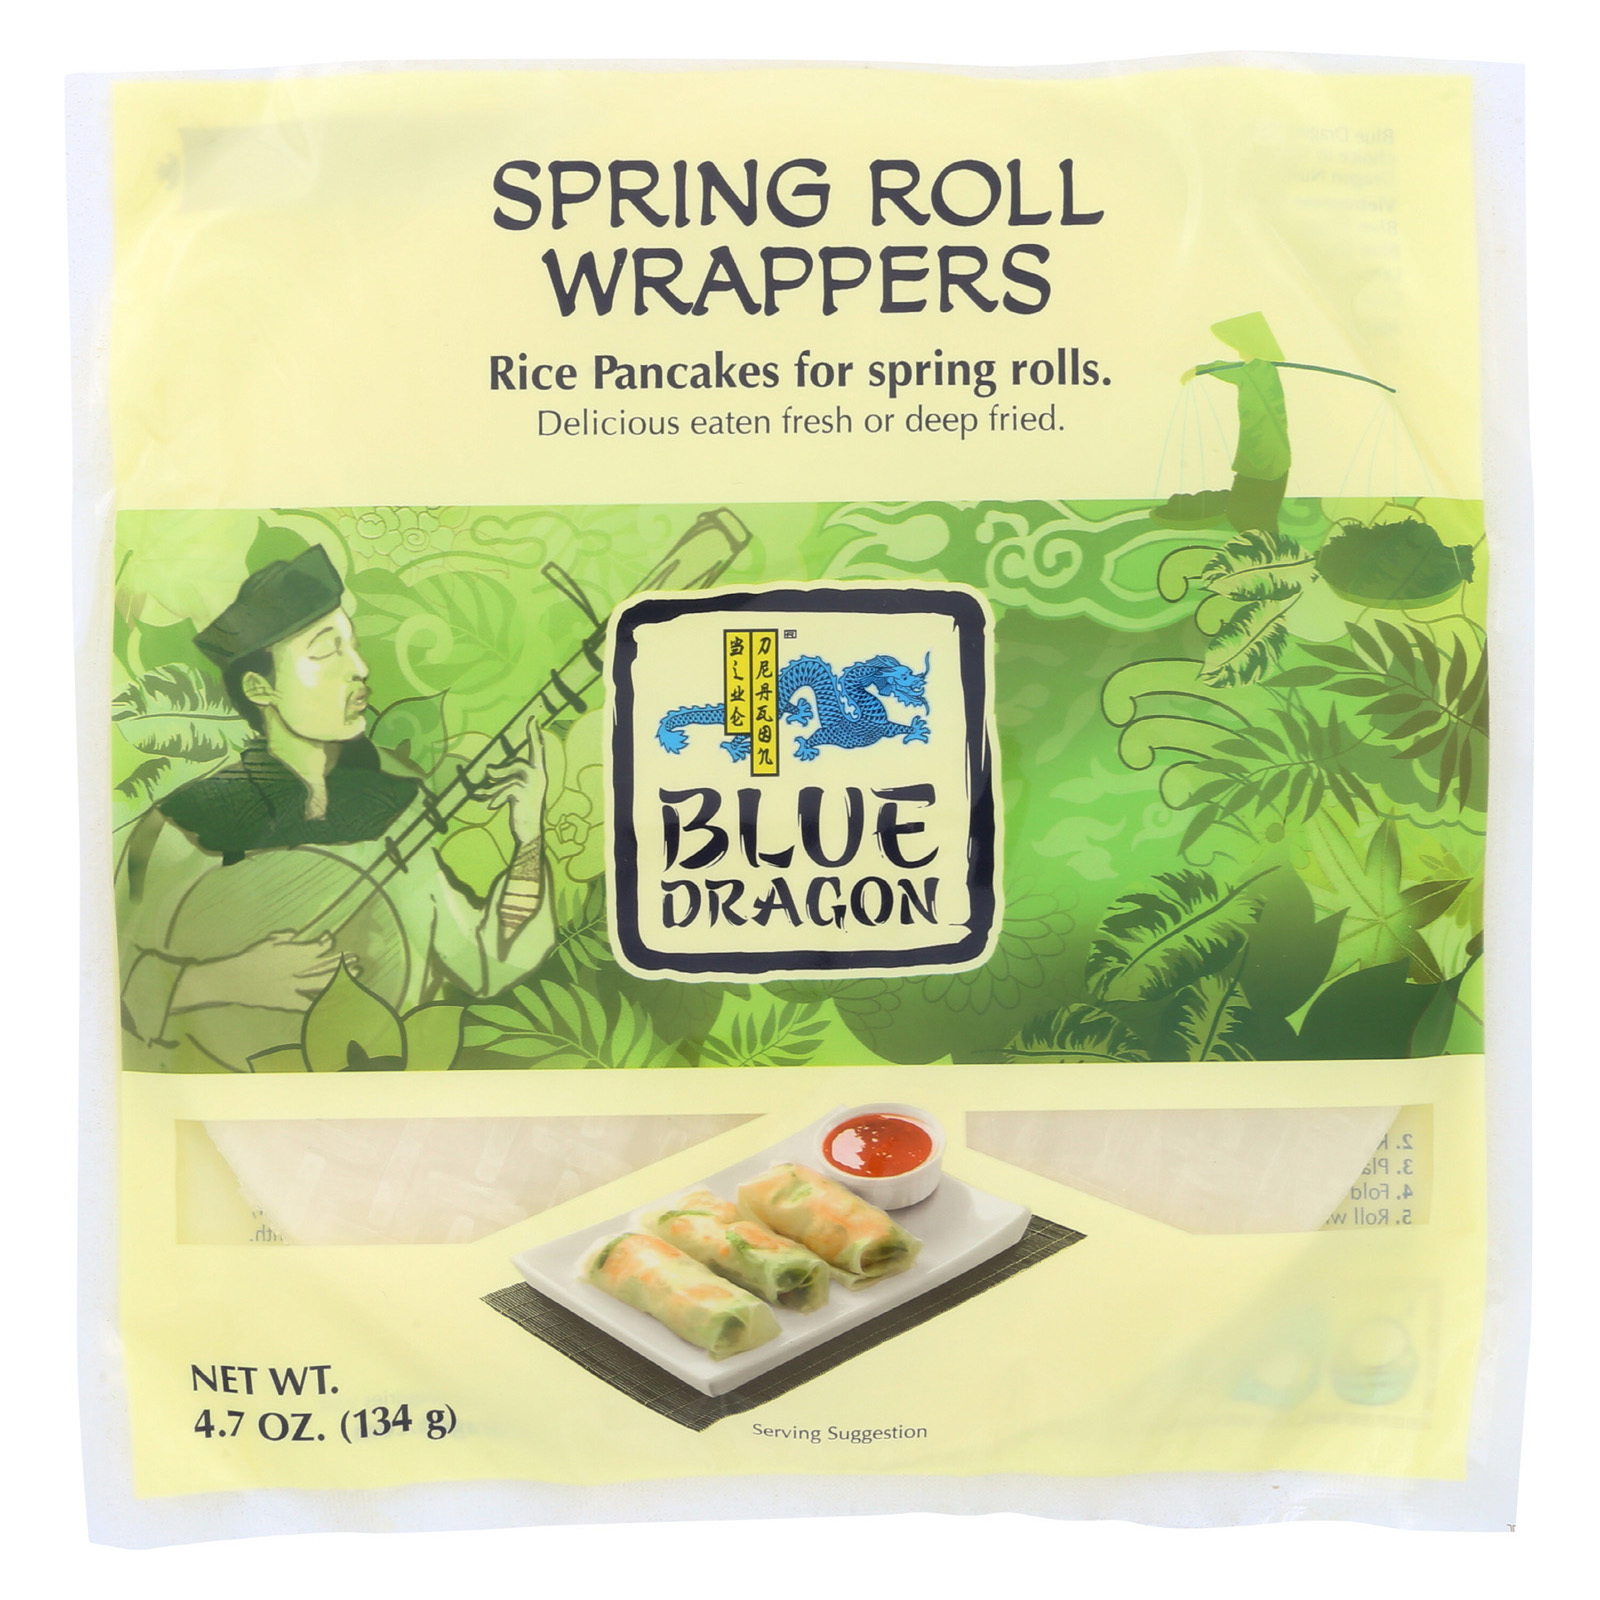 Blue Dragon Wrappers - Spring Roll - Case of 12 - 4.7 oz